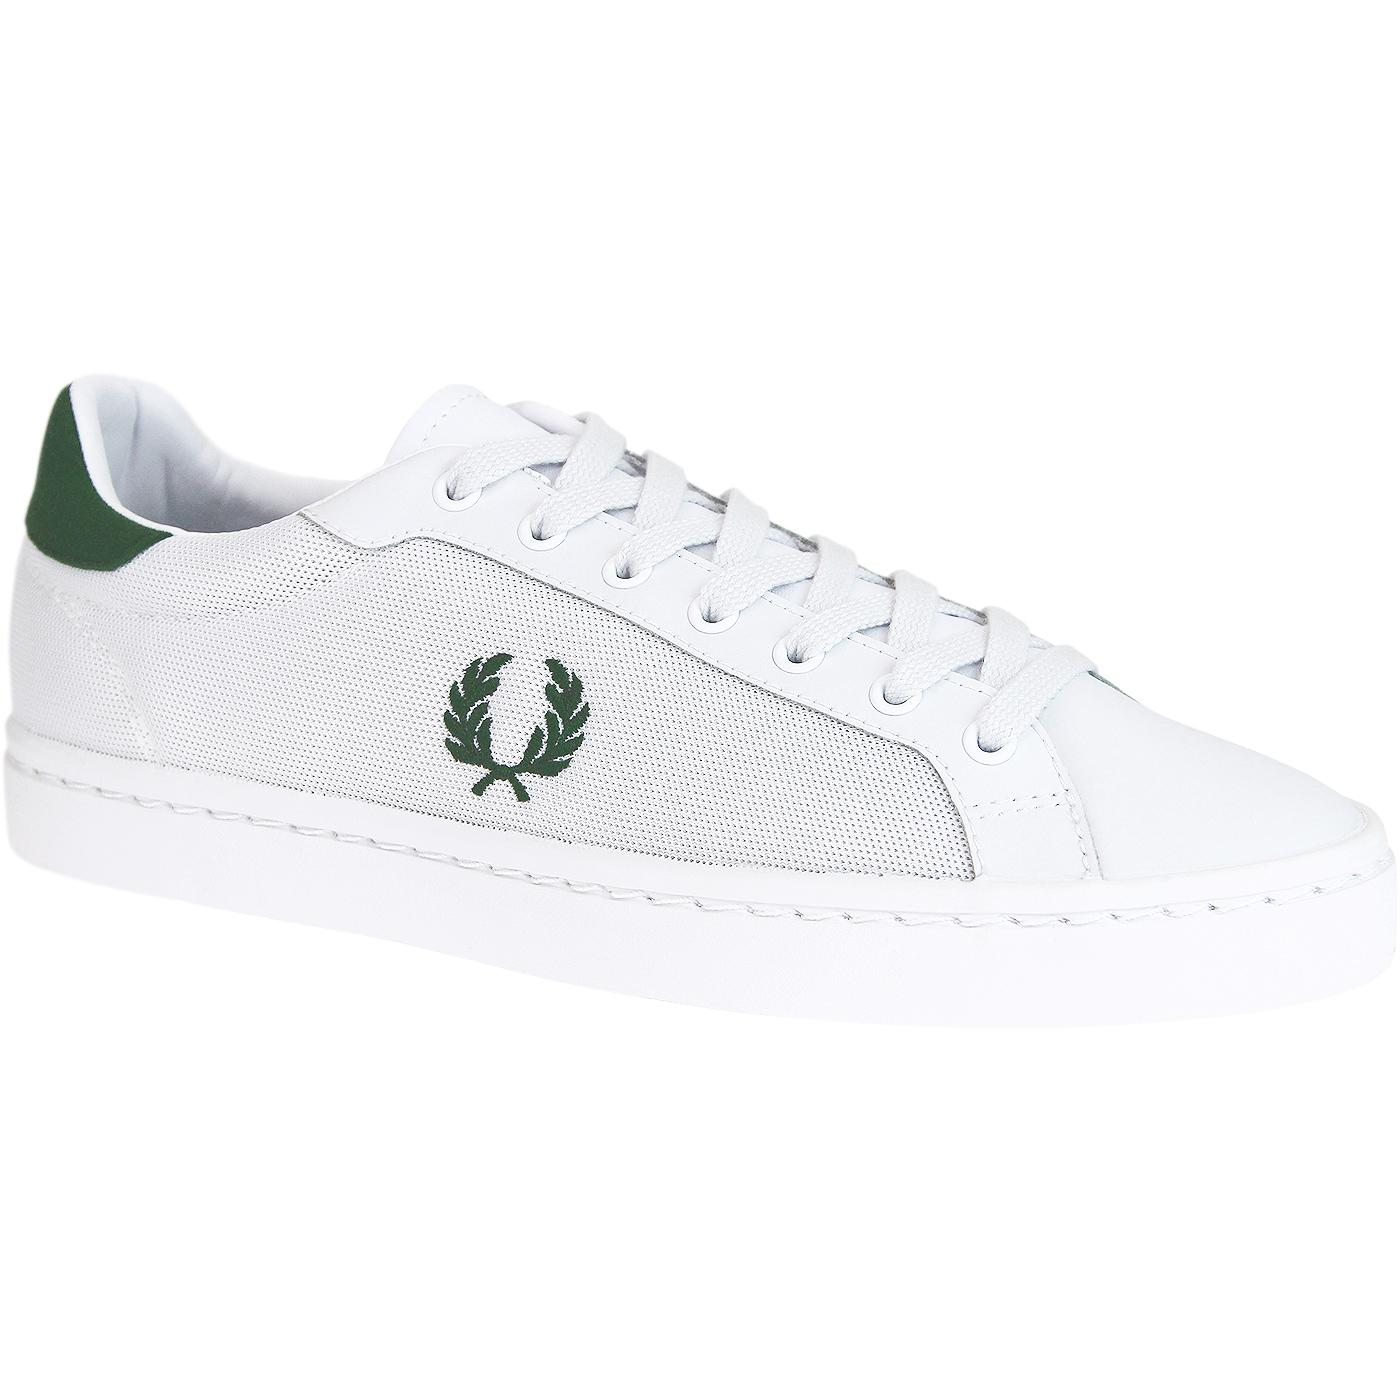 FRED PERRY Lawn Leather/Mesh Retro Men's Trainers